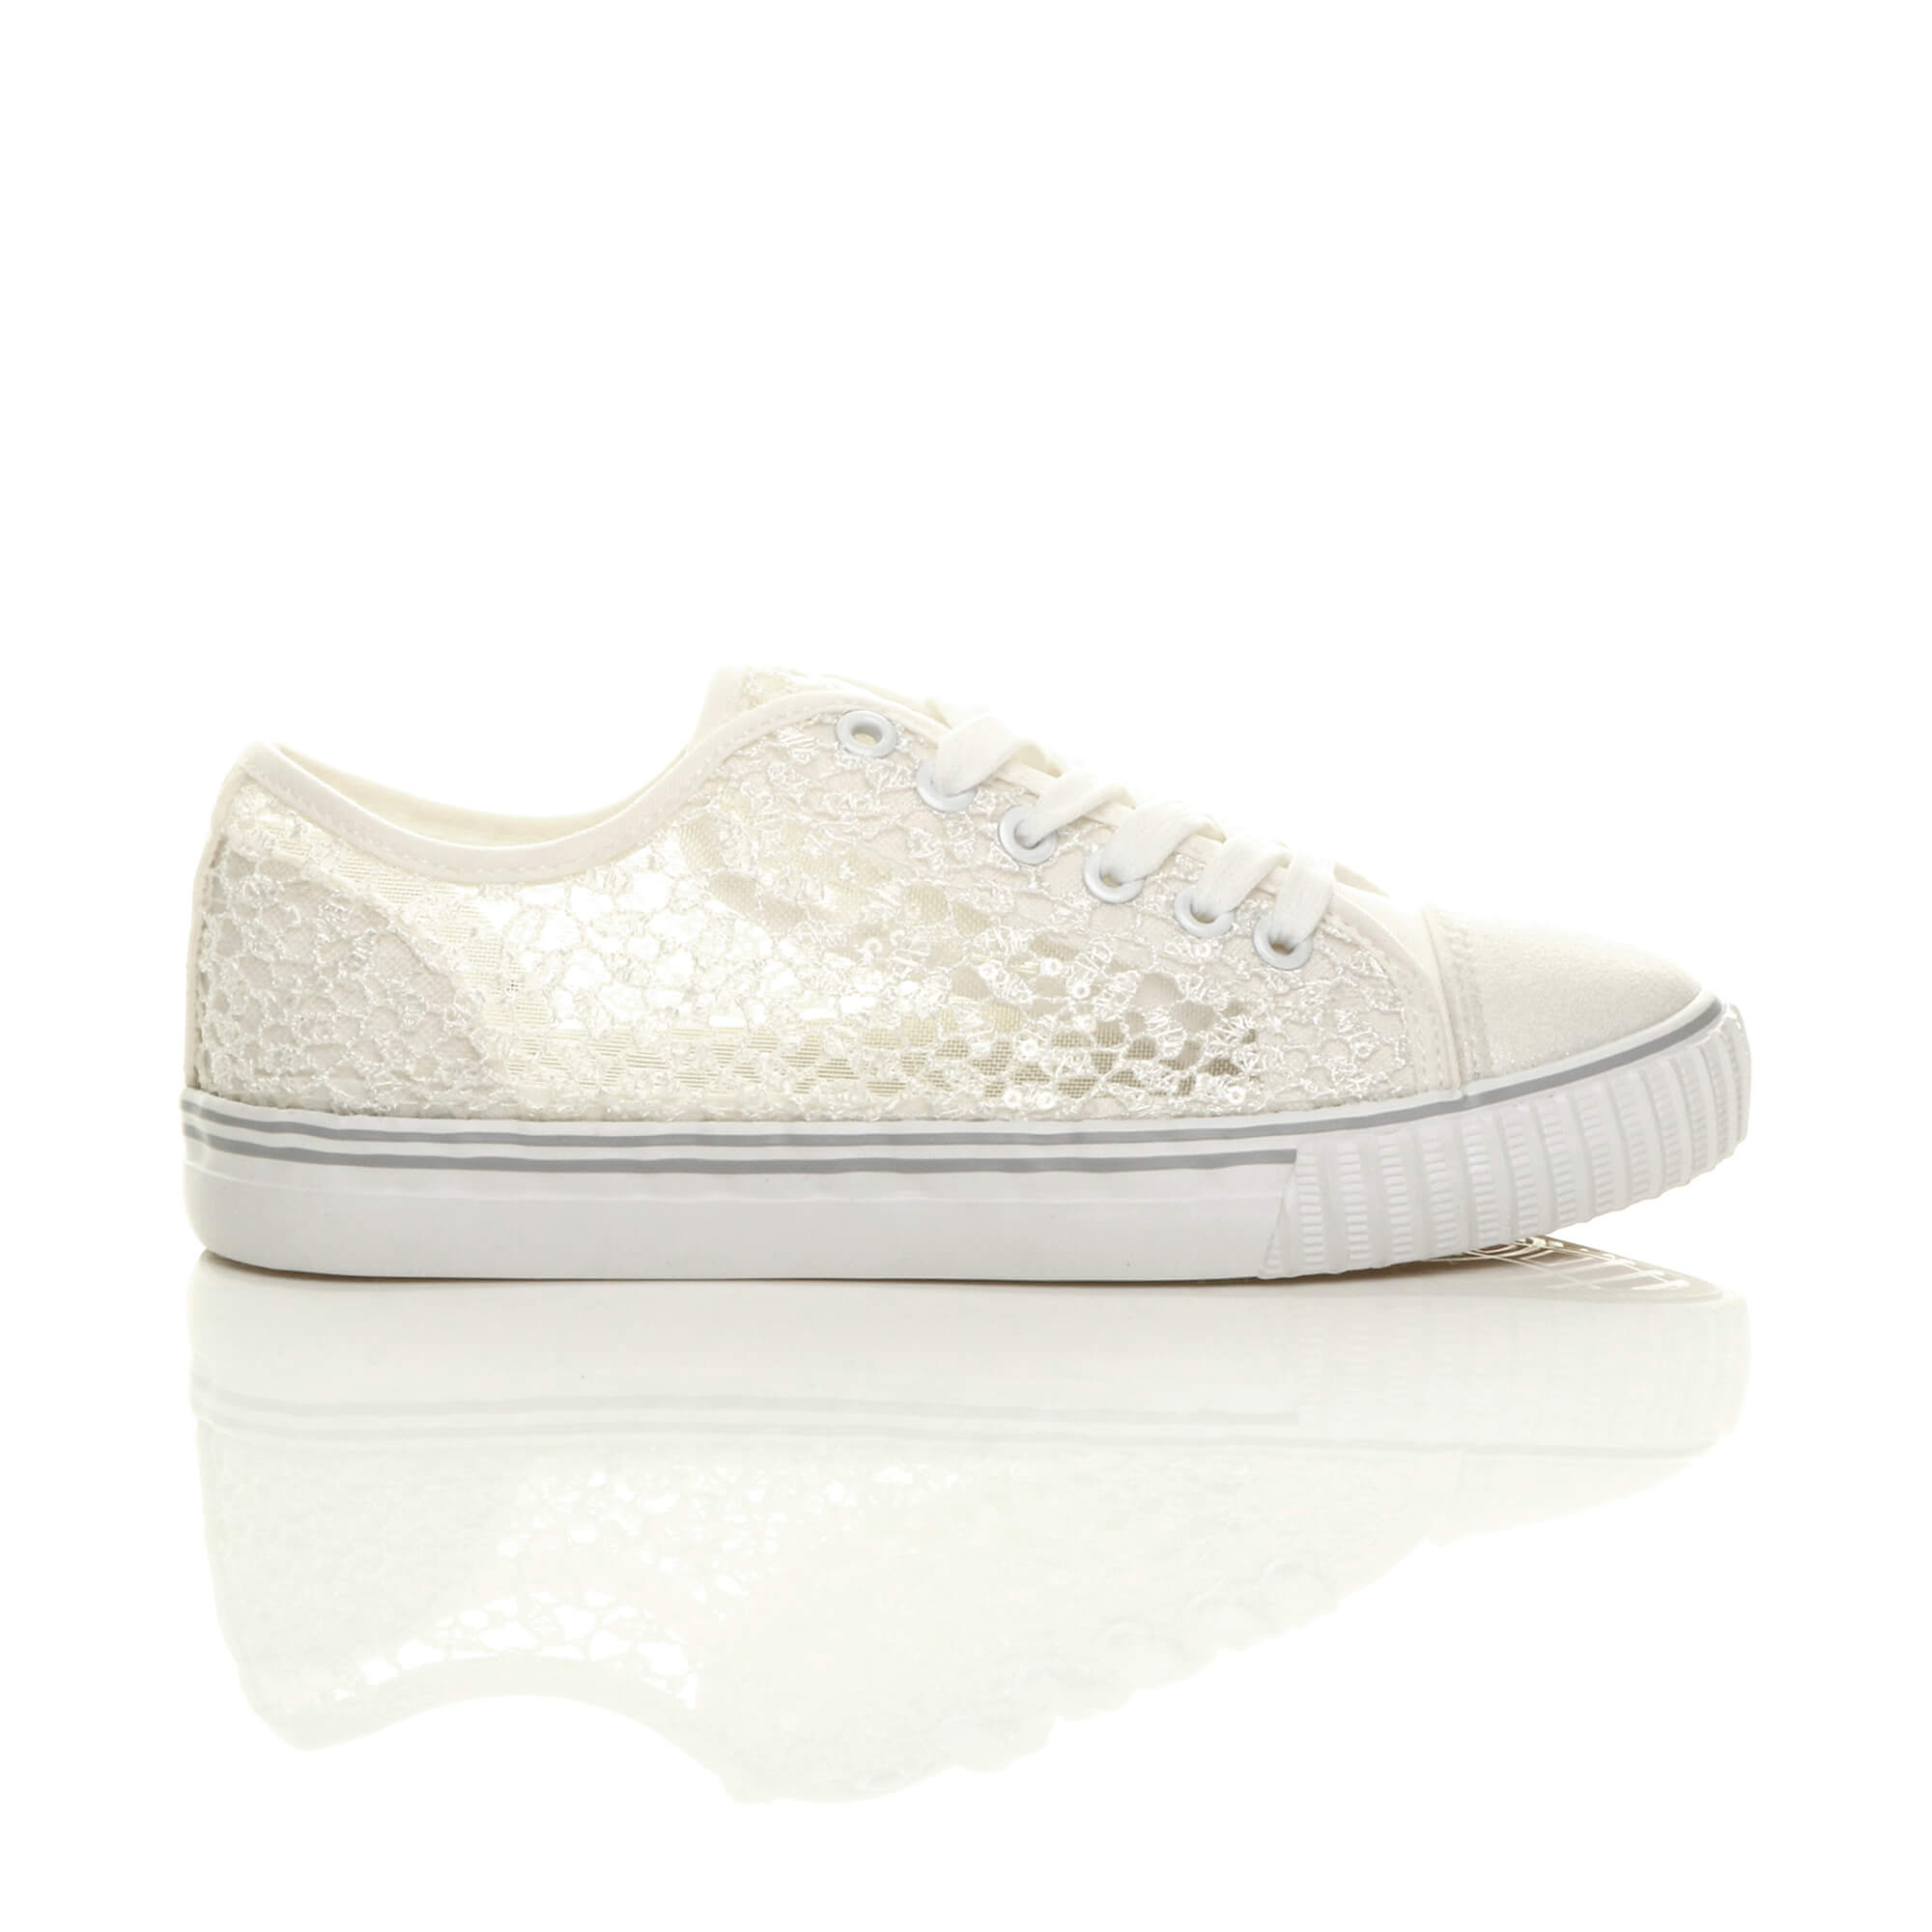 WOMENS LADIES FLAT LACE UP MESH SEQUIN SUMMER LO-TOP ...